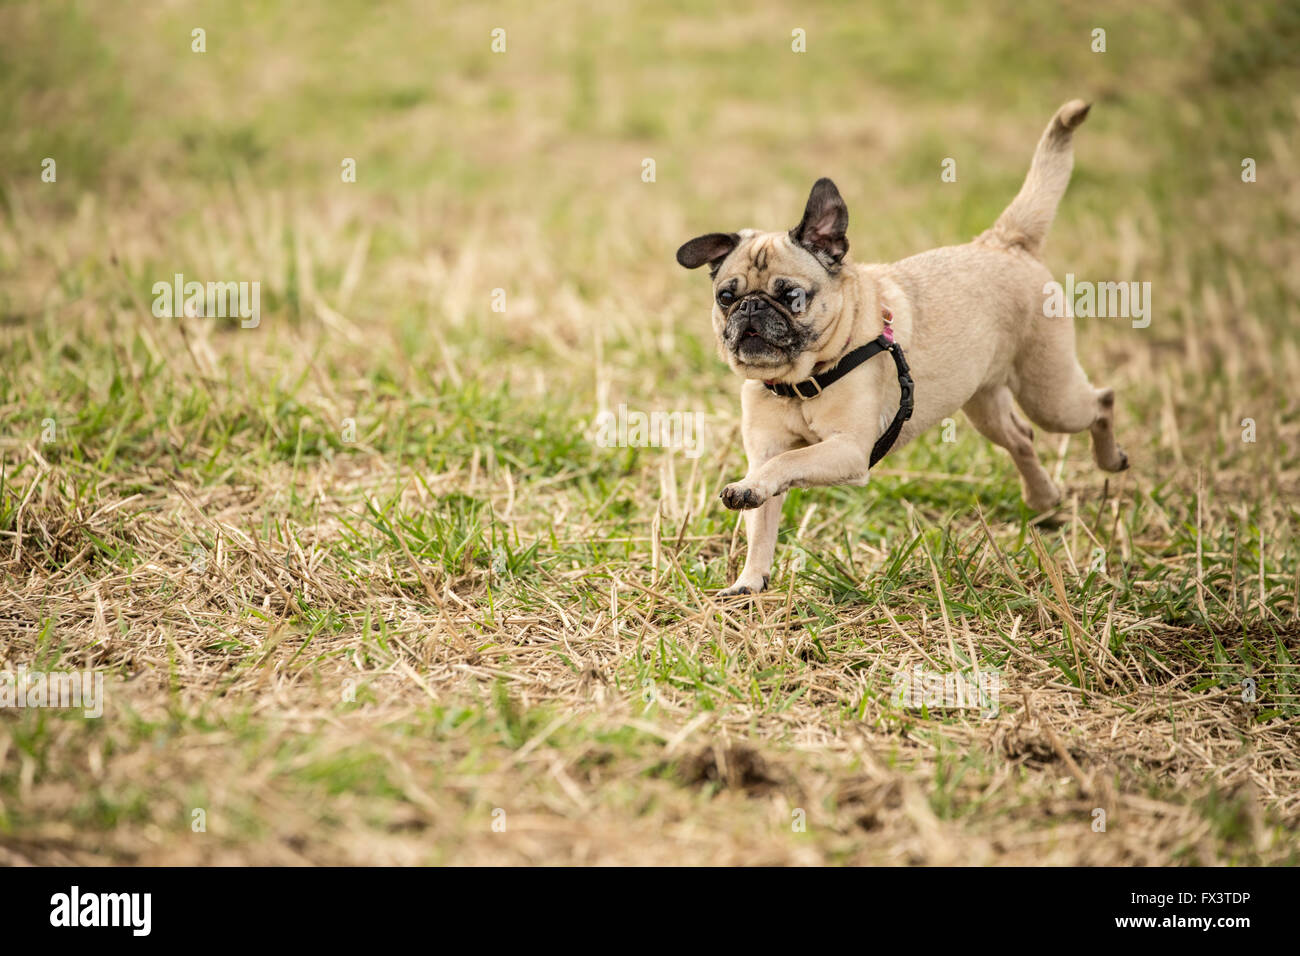 Fawn-colored Pug, Bella Boo, running in a field in Marymoor Park in Redmond, Washington, USA - Stock Image